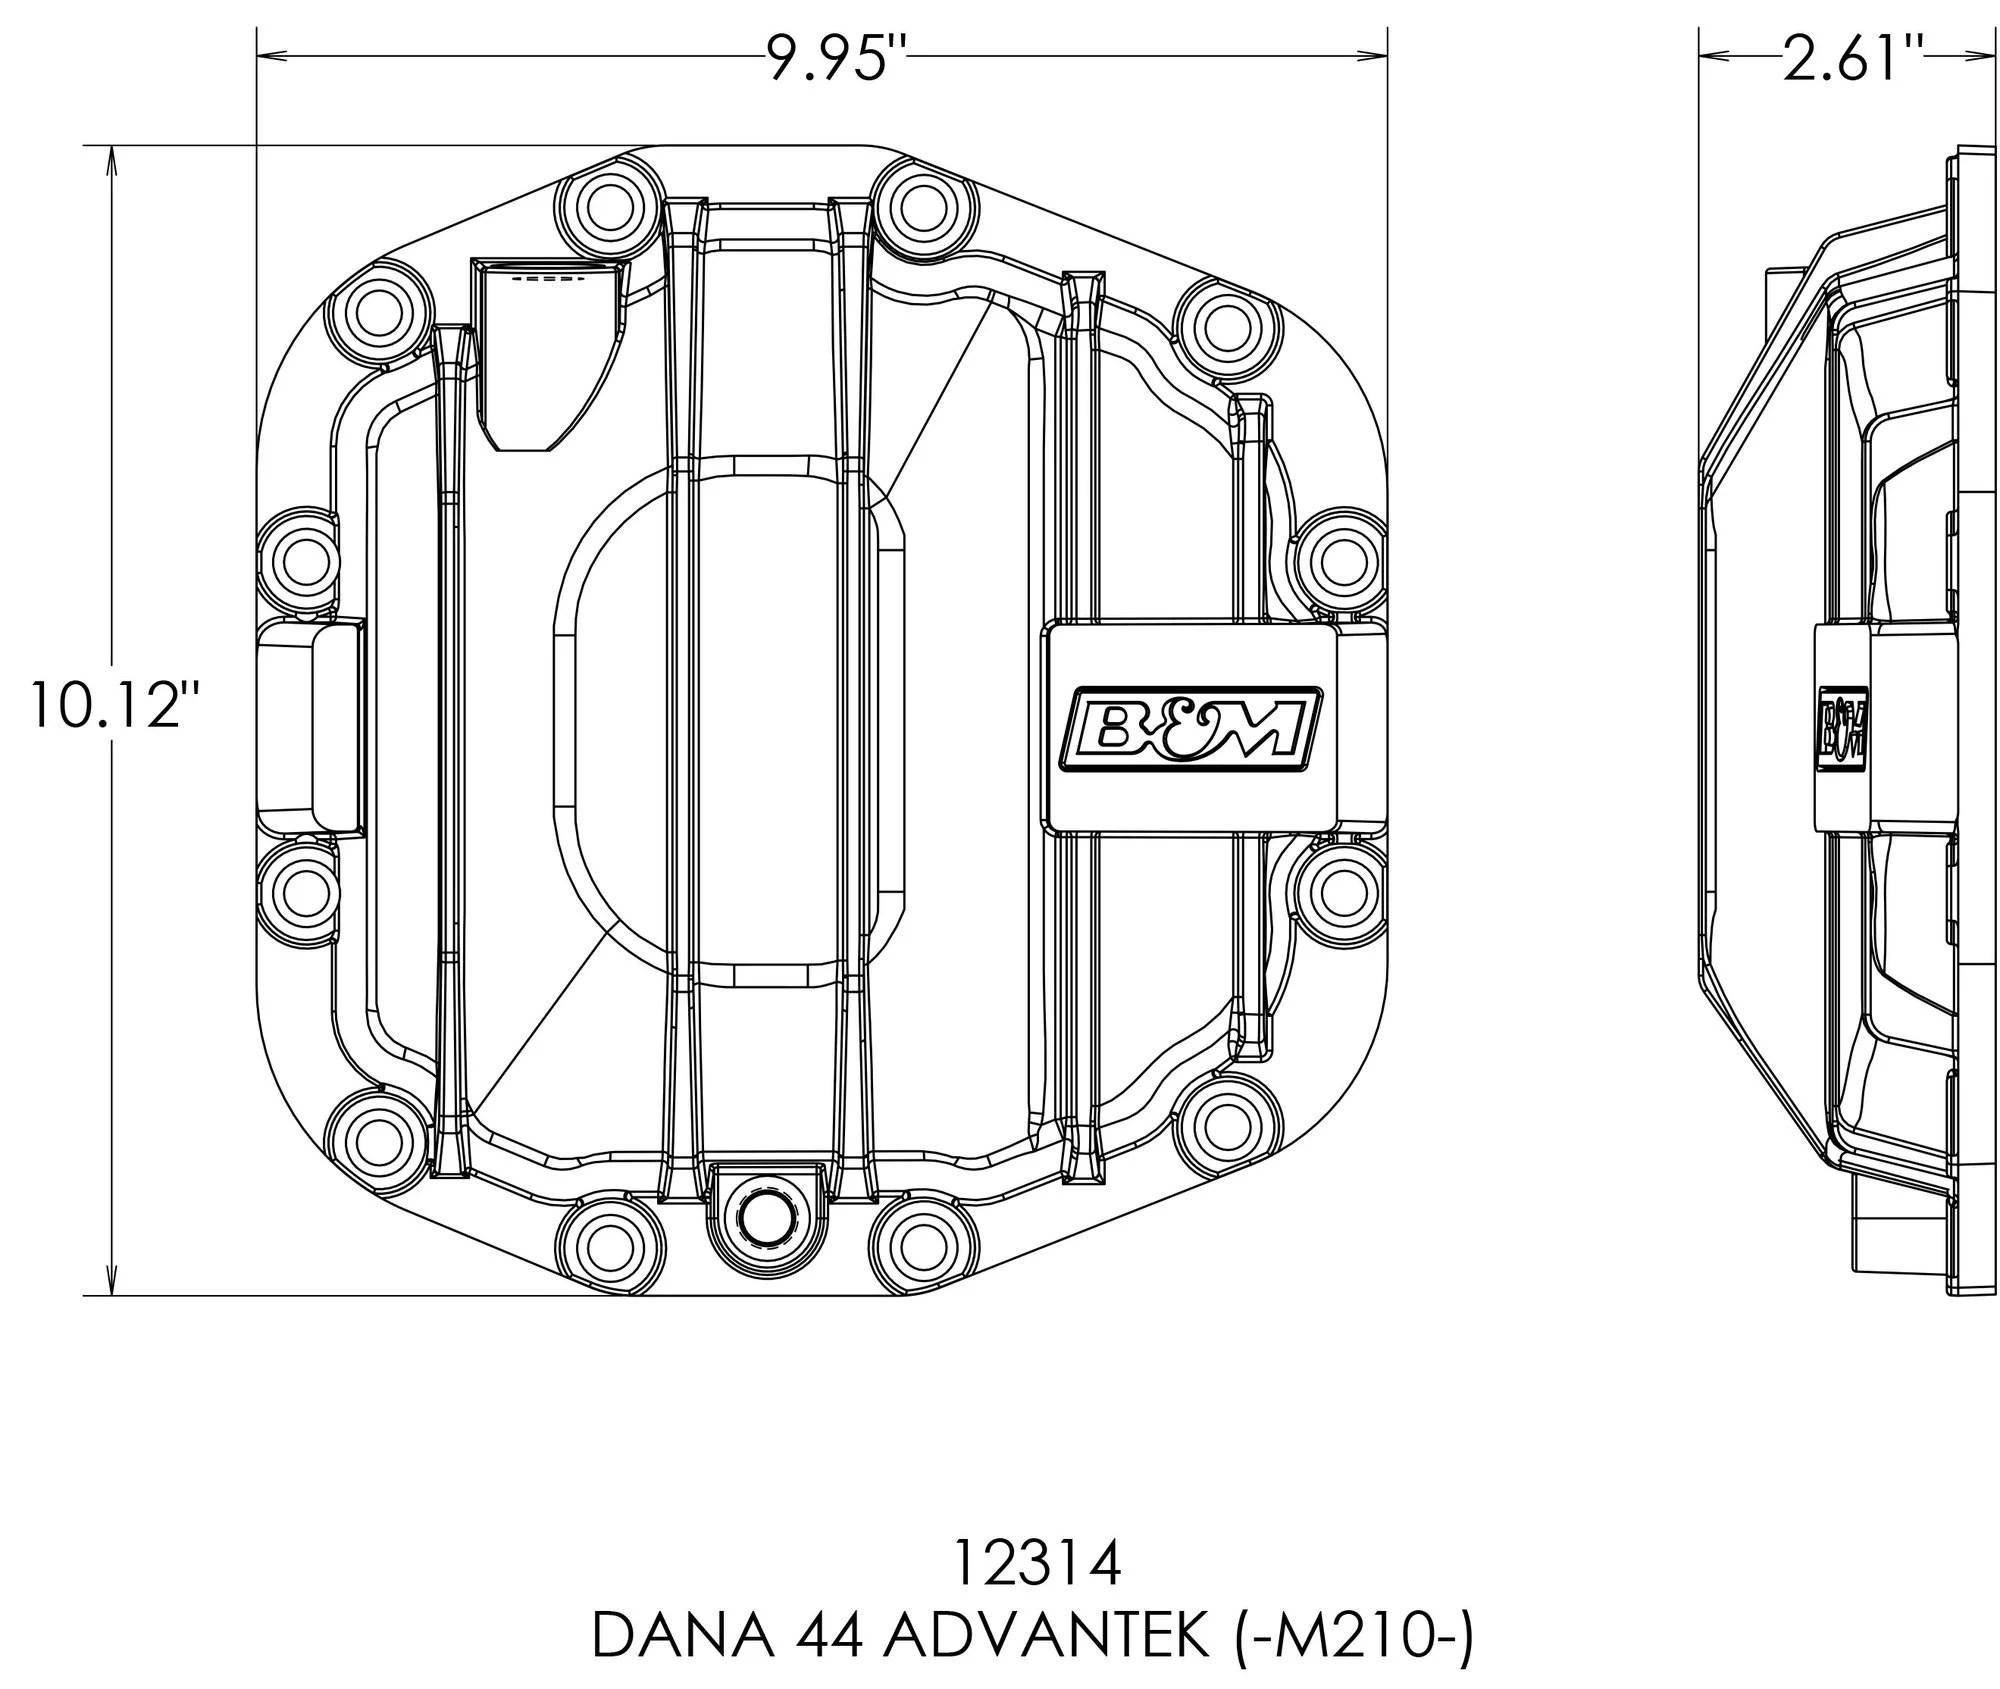 hight resolution of b m racing nodular iron front differential cover 18 19 jeep wrangler jl rubicon unlimited 4 door with dana 44 front axle quadratec